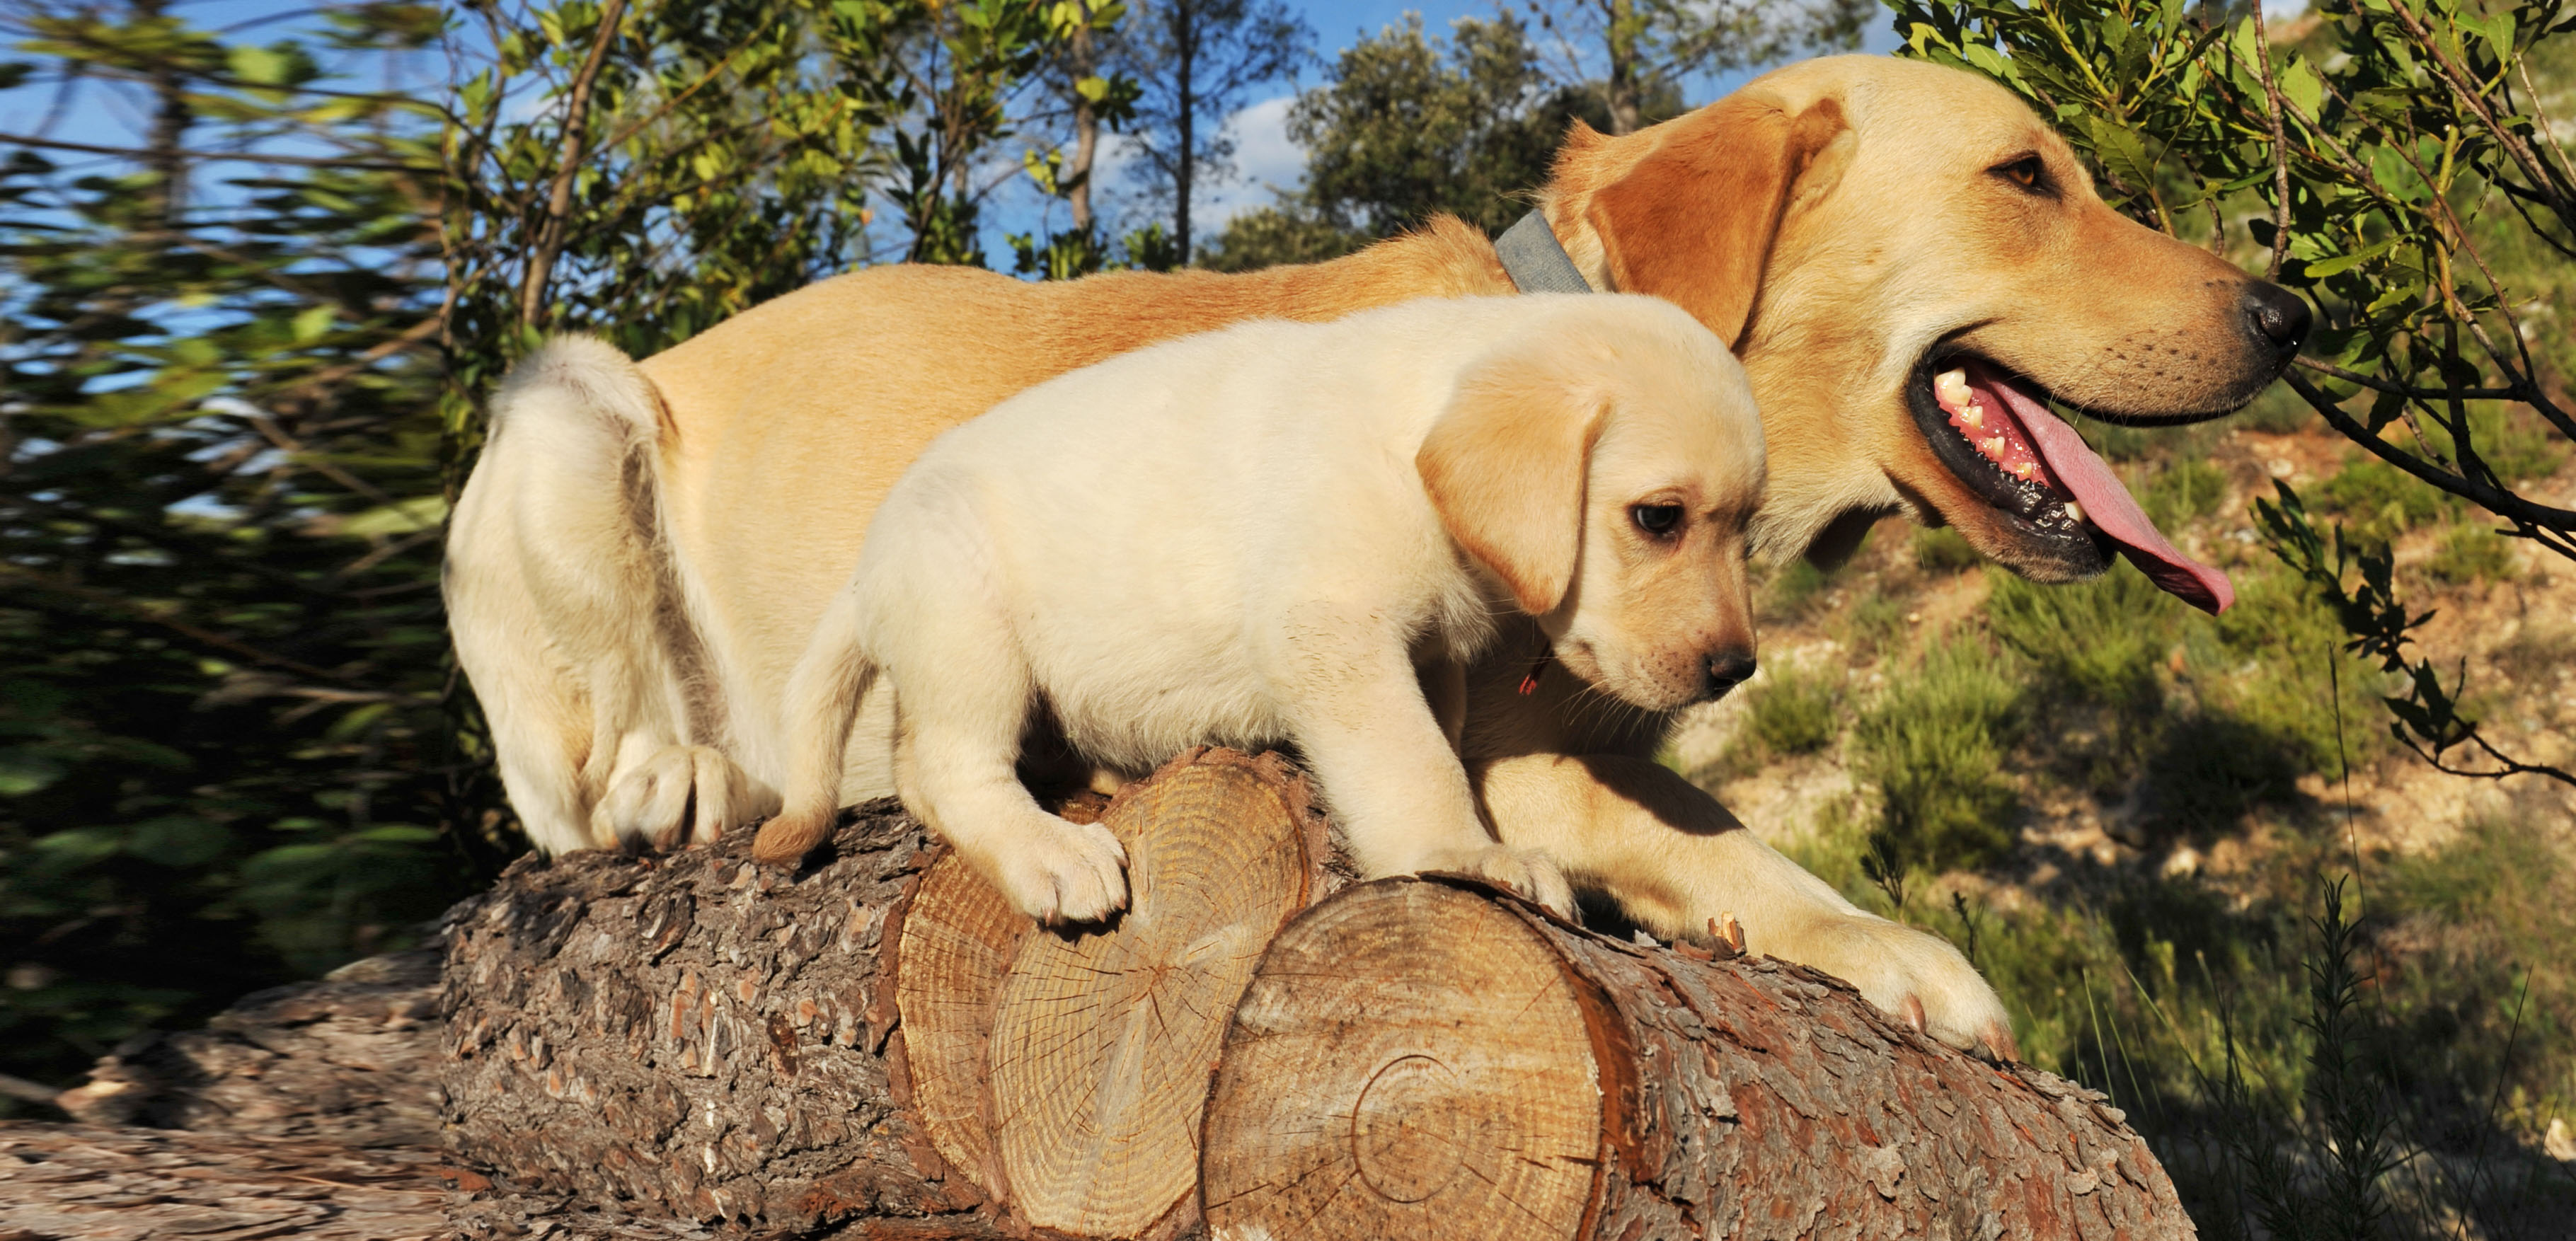 photodune-889420-labrador-puppy-and-adult-l-wide